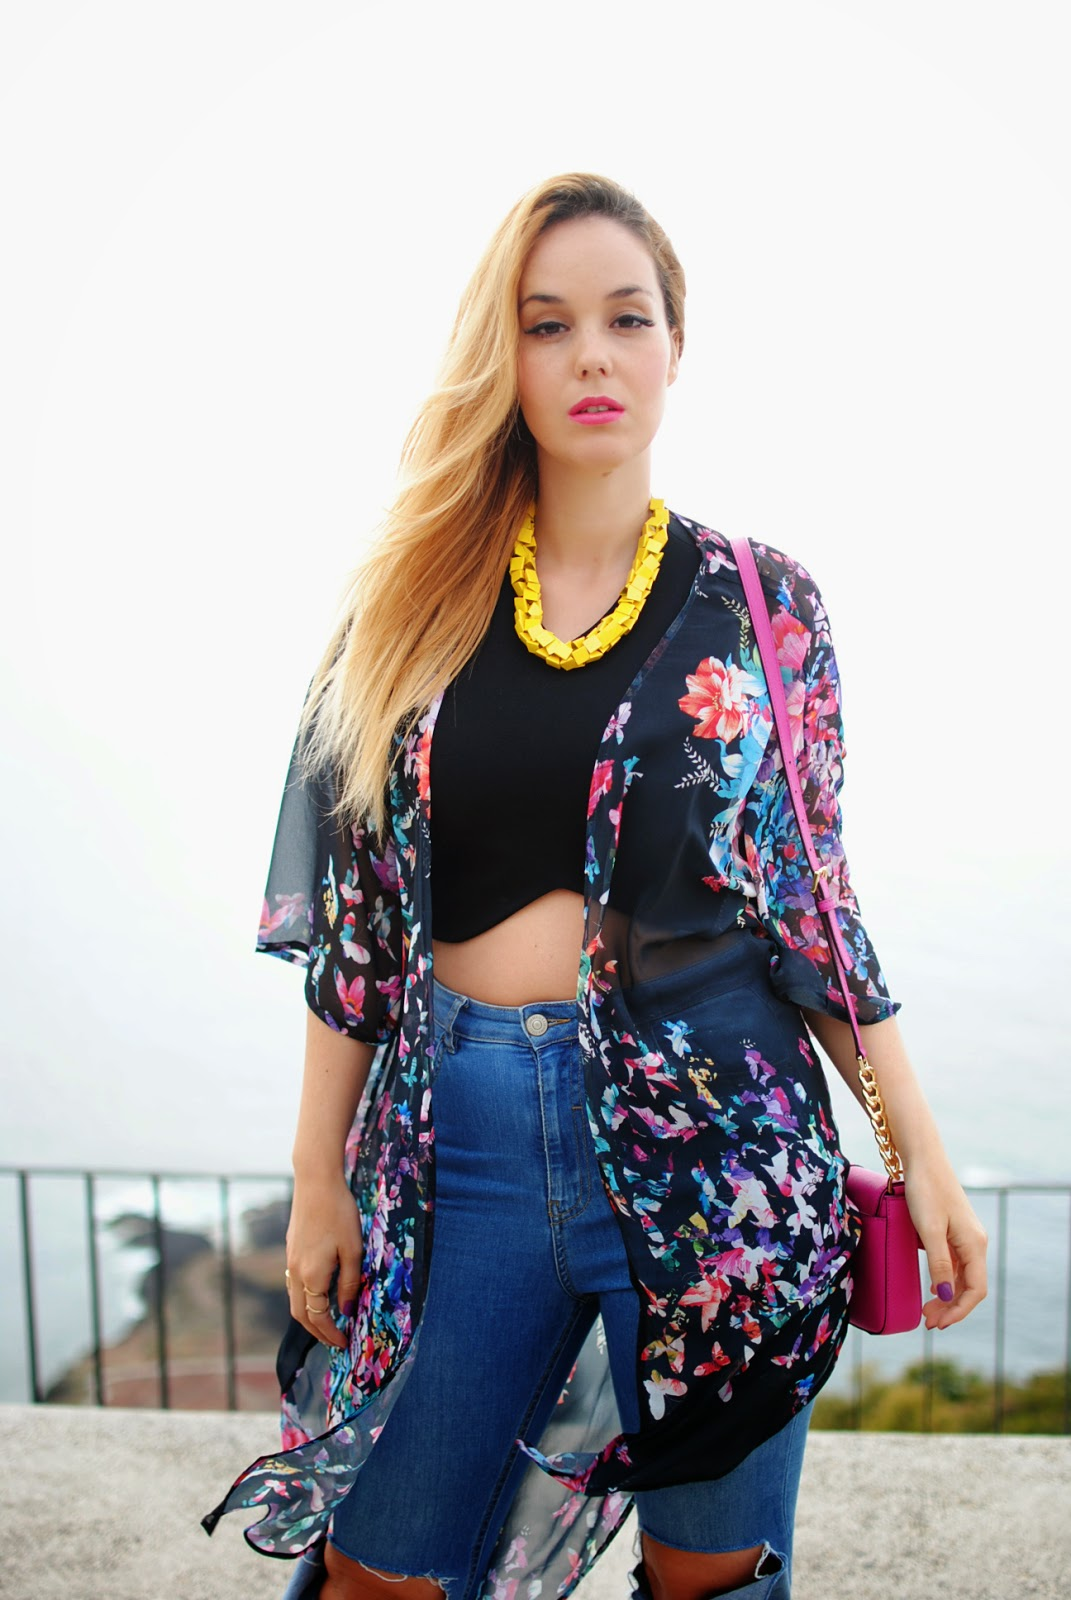 KIMONO, FLORAL PRINT, MOM JEANS, PANALONES DE MAMÁ, RIPPED JEANS